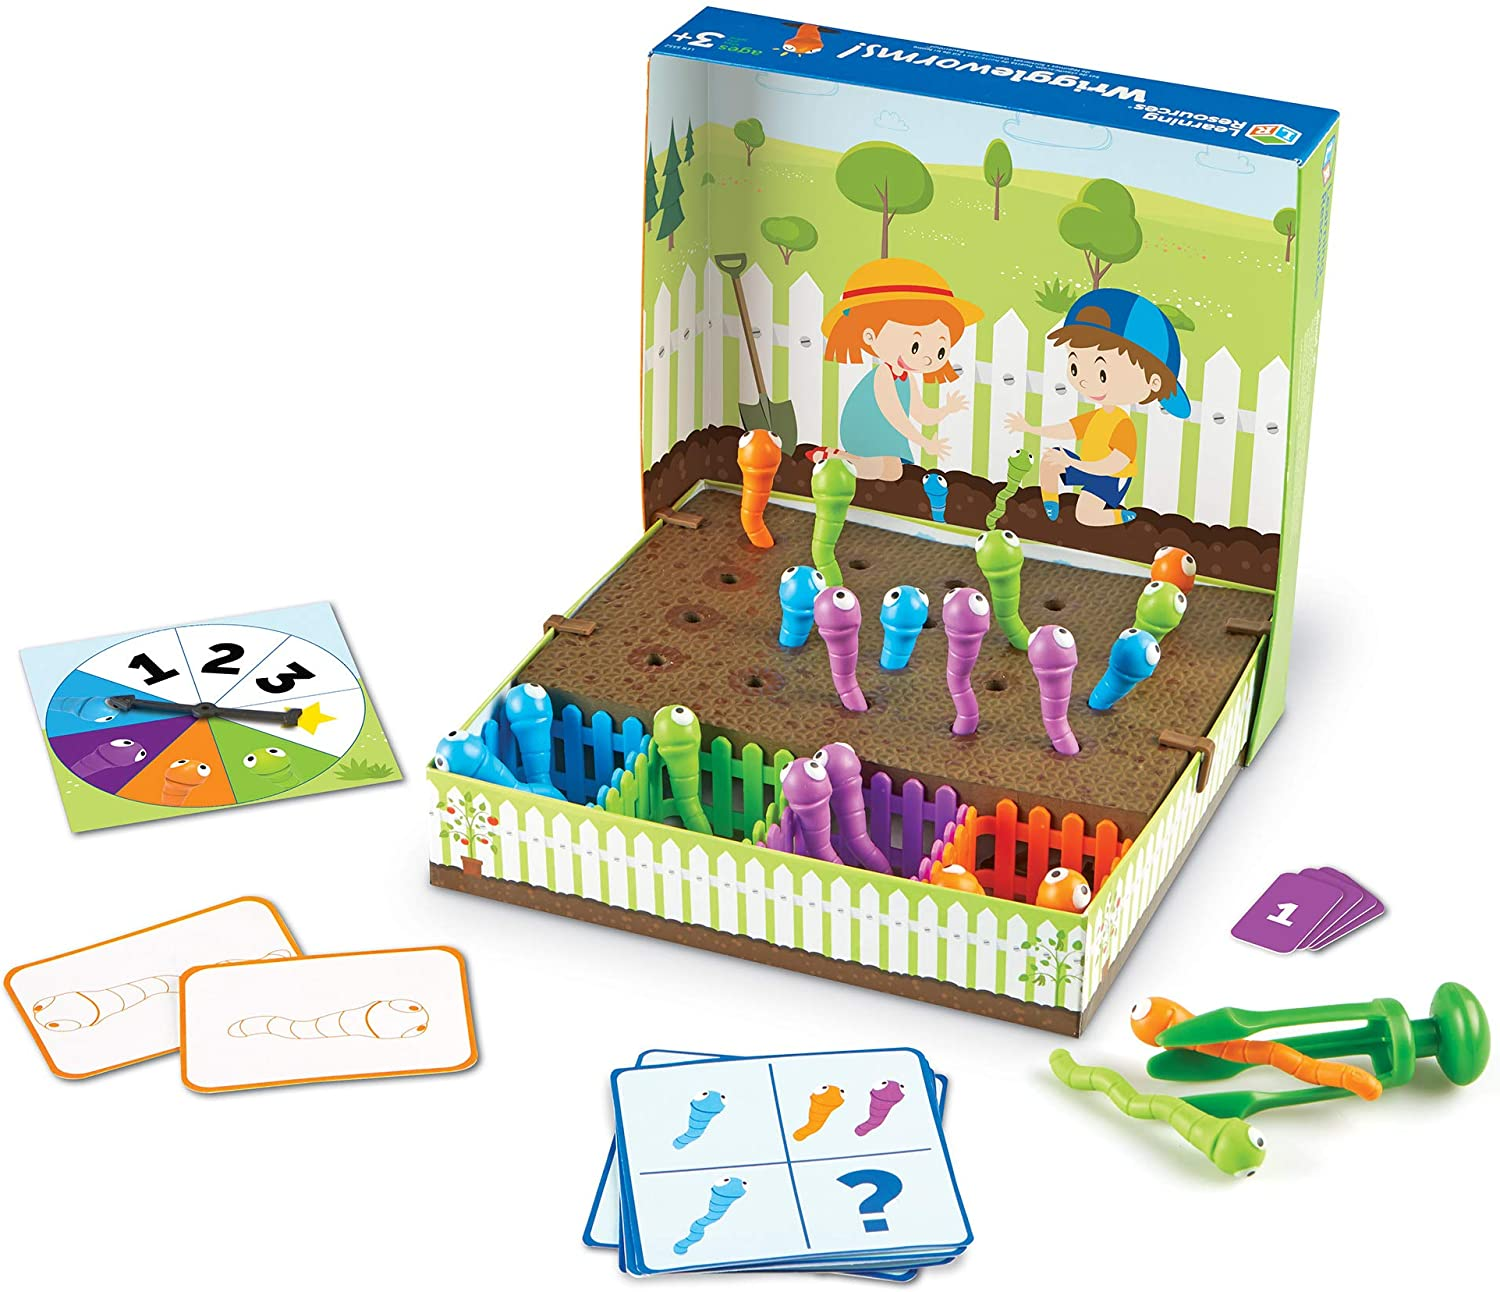 Learning Resources Wriggleworms! Fine Motor Activity Set, Toddler Fine Motor Skills, Easter Gifts for Kids, Ages 3+